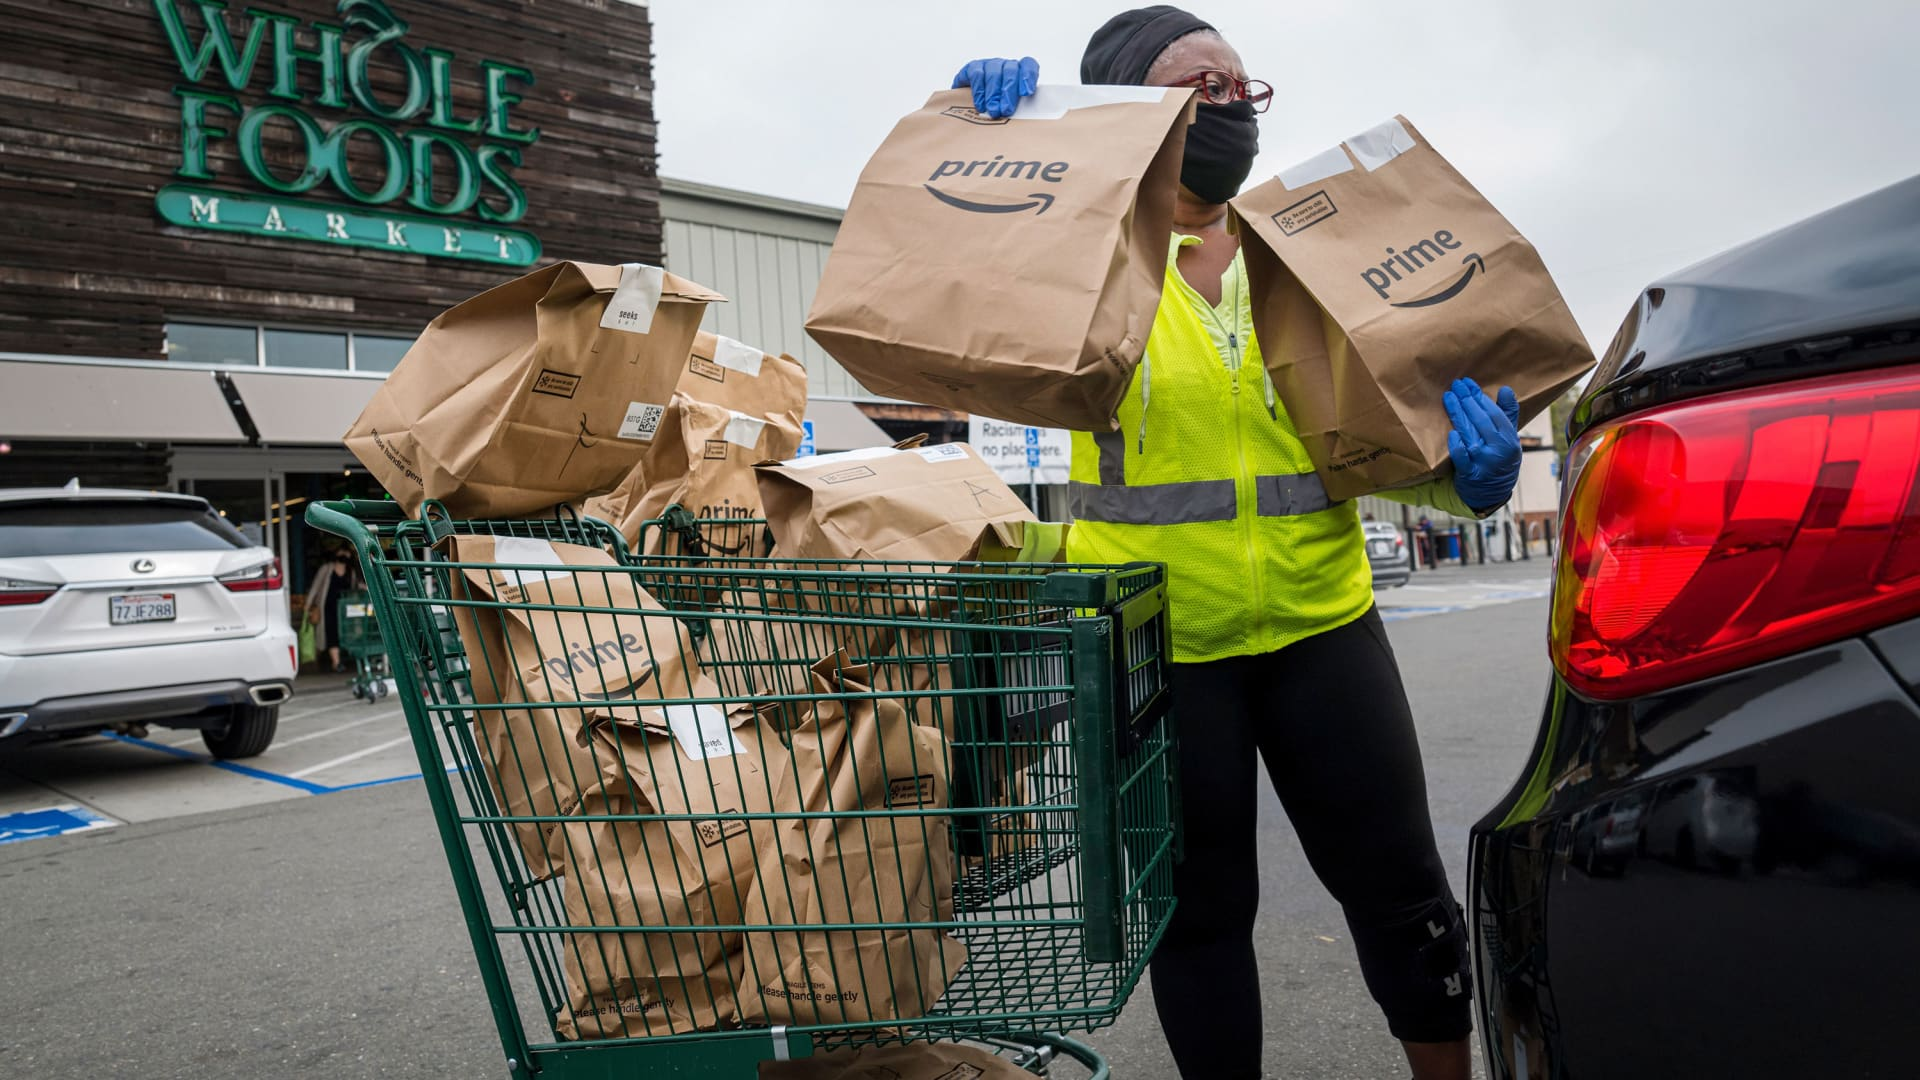 An independent contractor wearing a protective mask and gloves loads Amazon Prime grocery bags into a car outside a Whole Foods Market in Berkeley, California, Oct. 7, 2020.